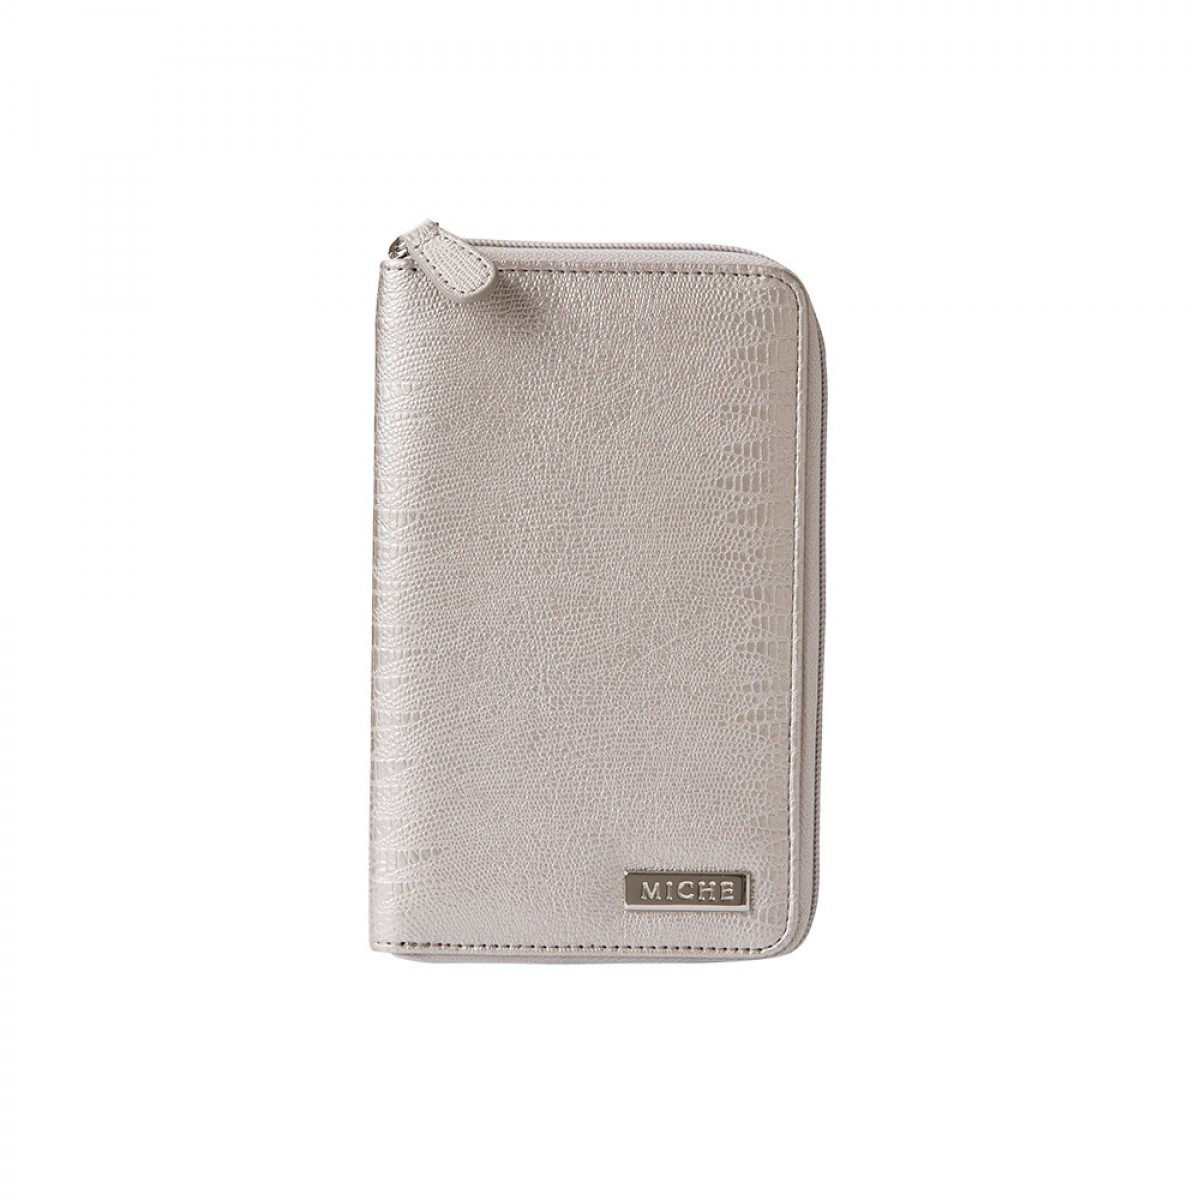 Wallet - Metallic Silver